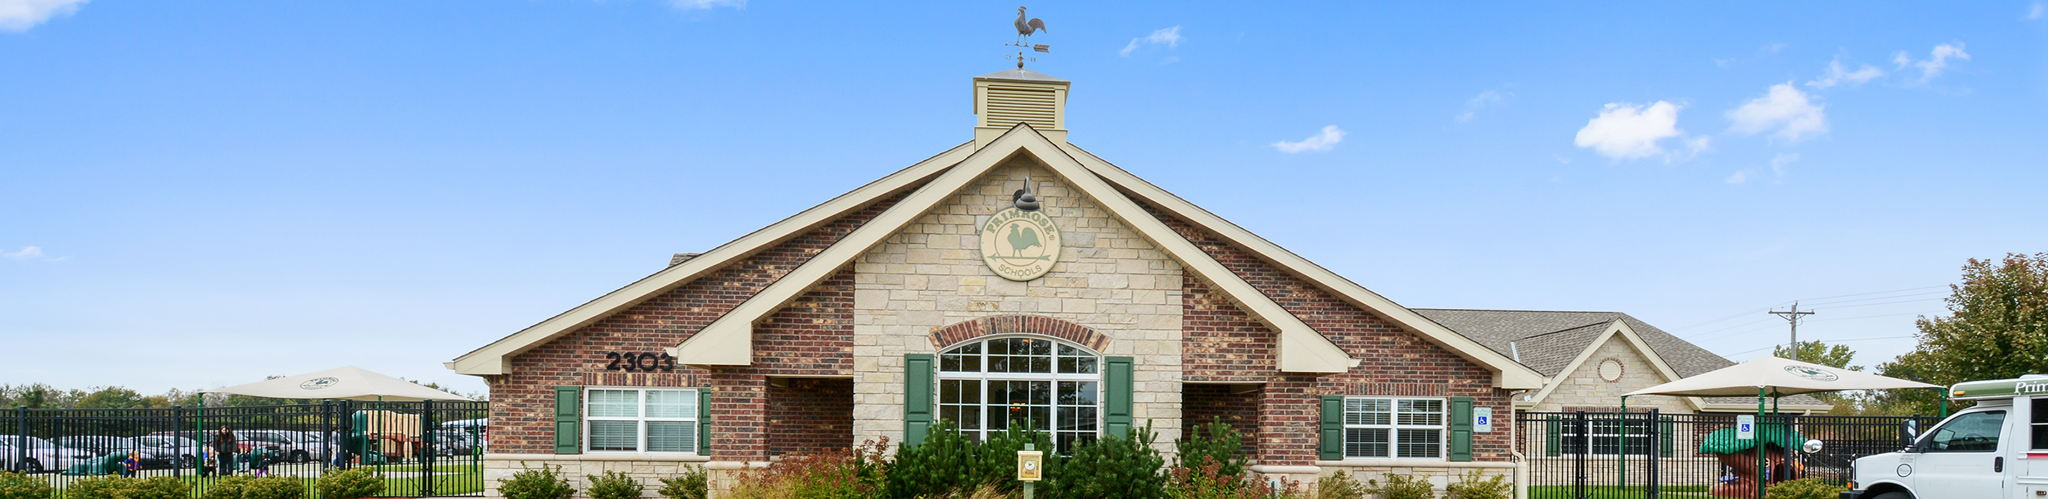 Exterior of a Primrose School of The Lakes at Blaine